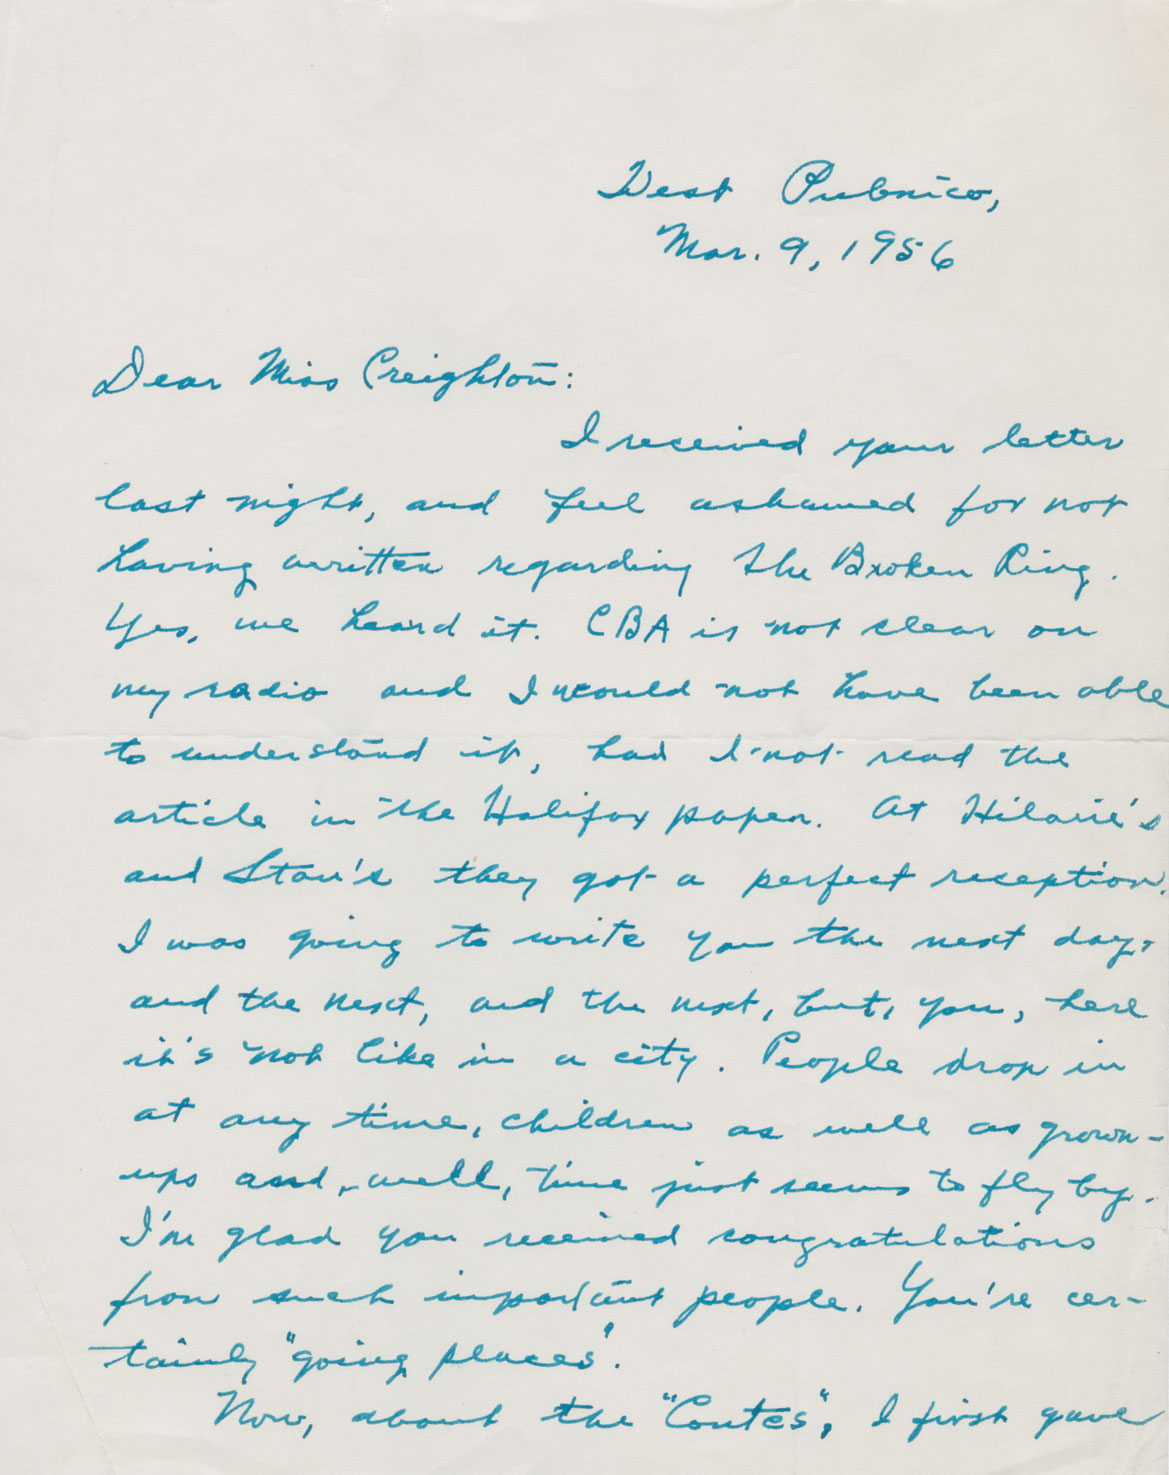 Letter from Laura McNeil of West Pubnico on 9 March 1956